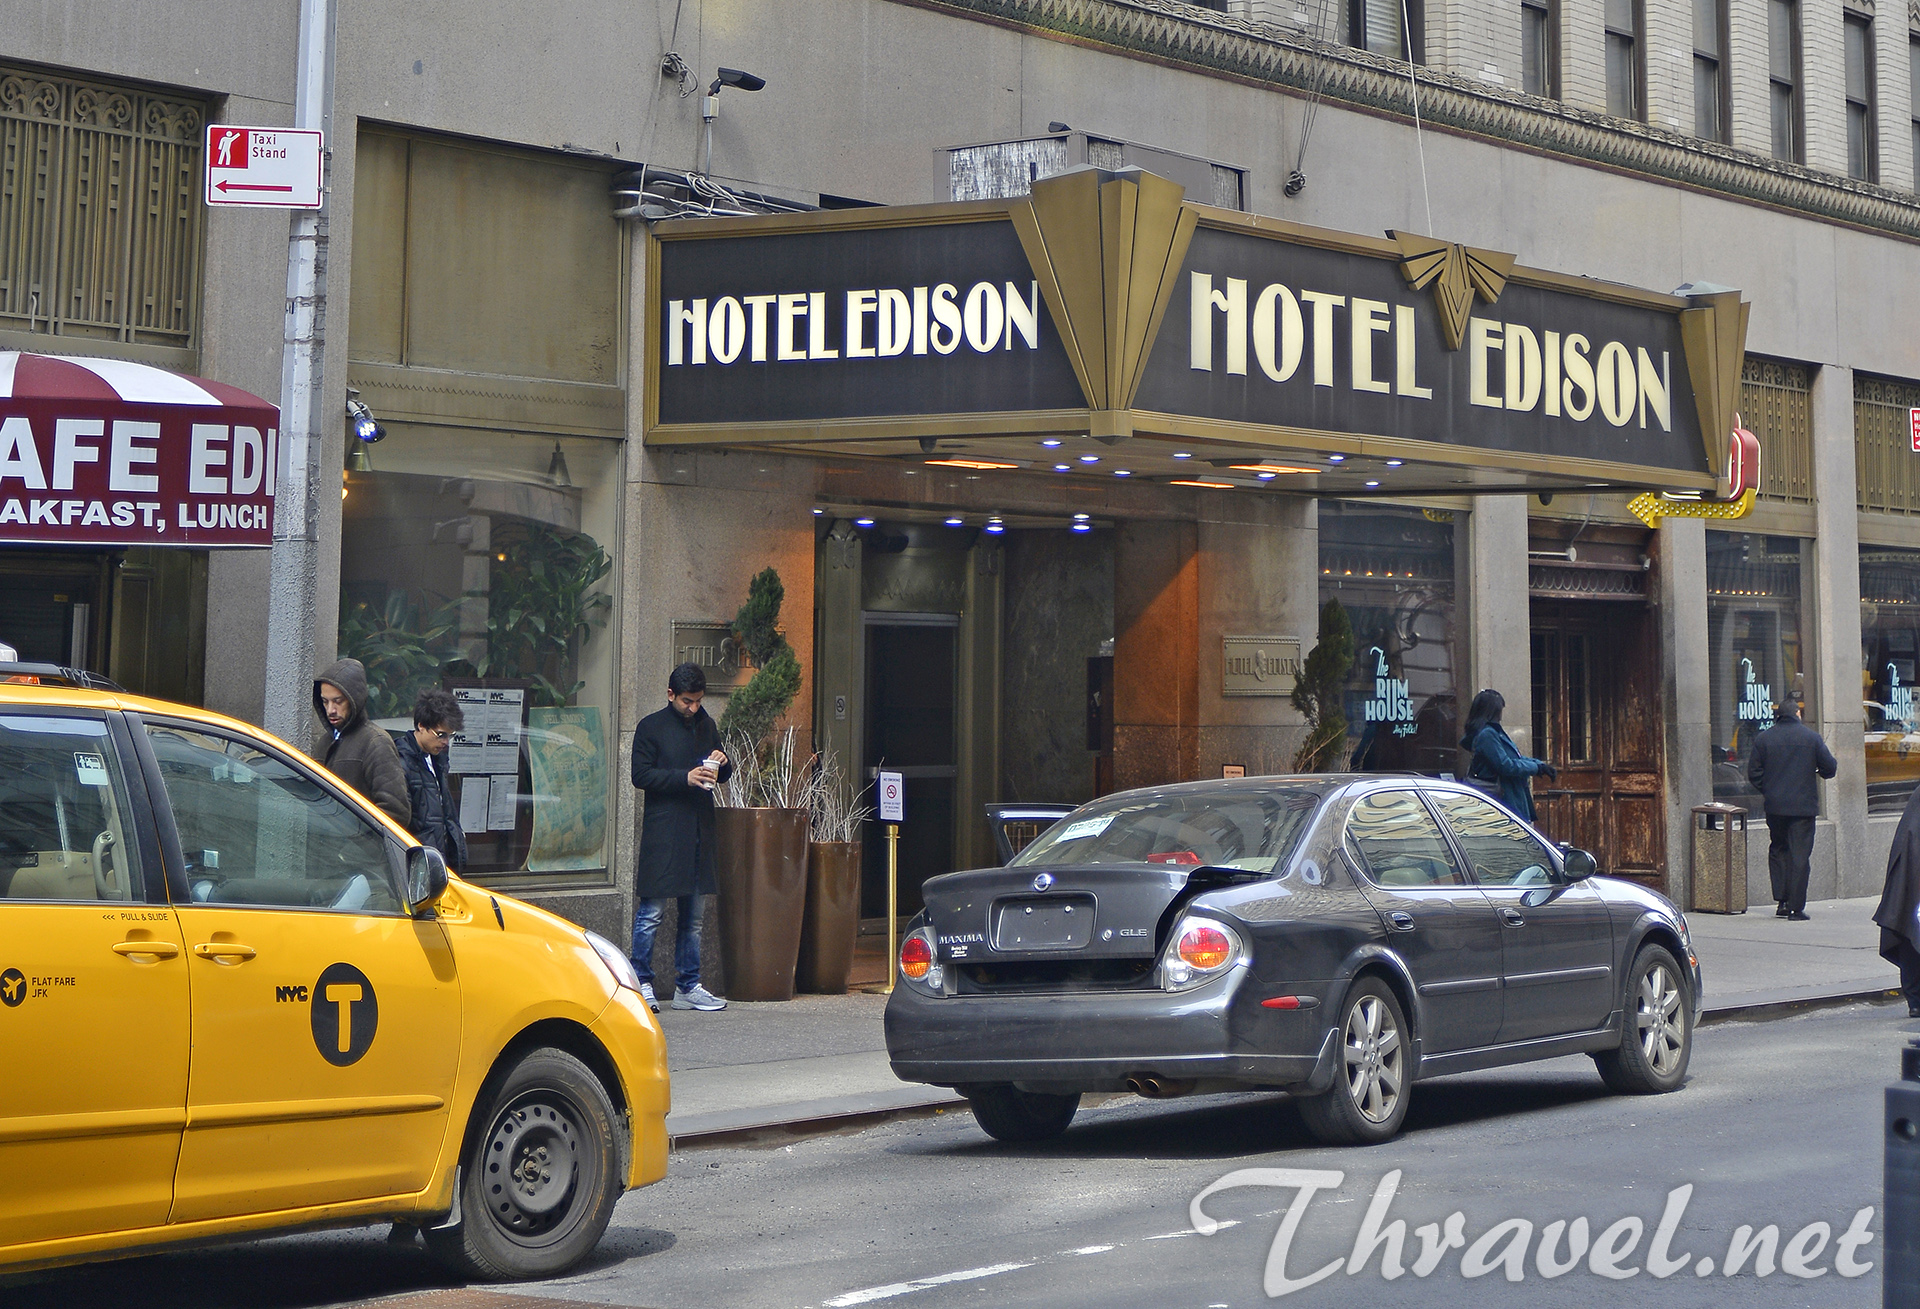 Hotels in Times Square, New York City (United States of